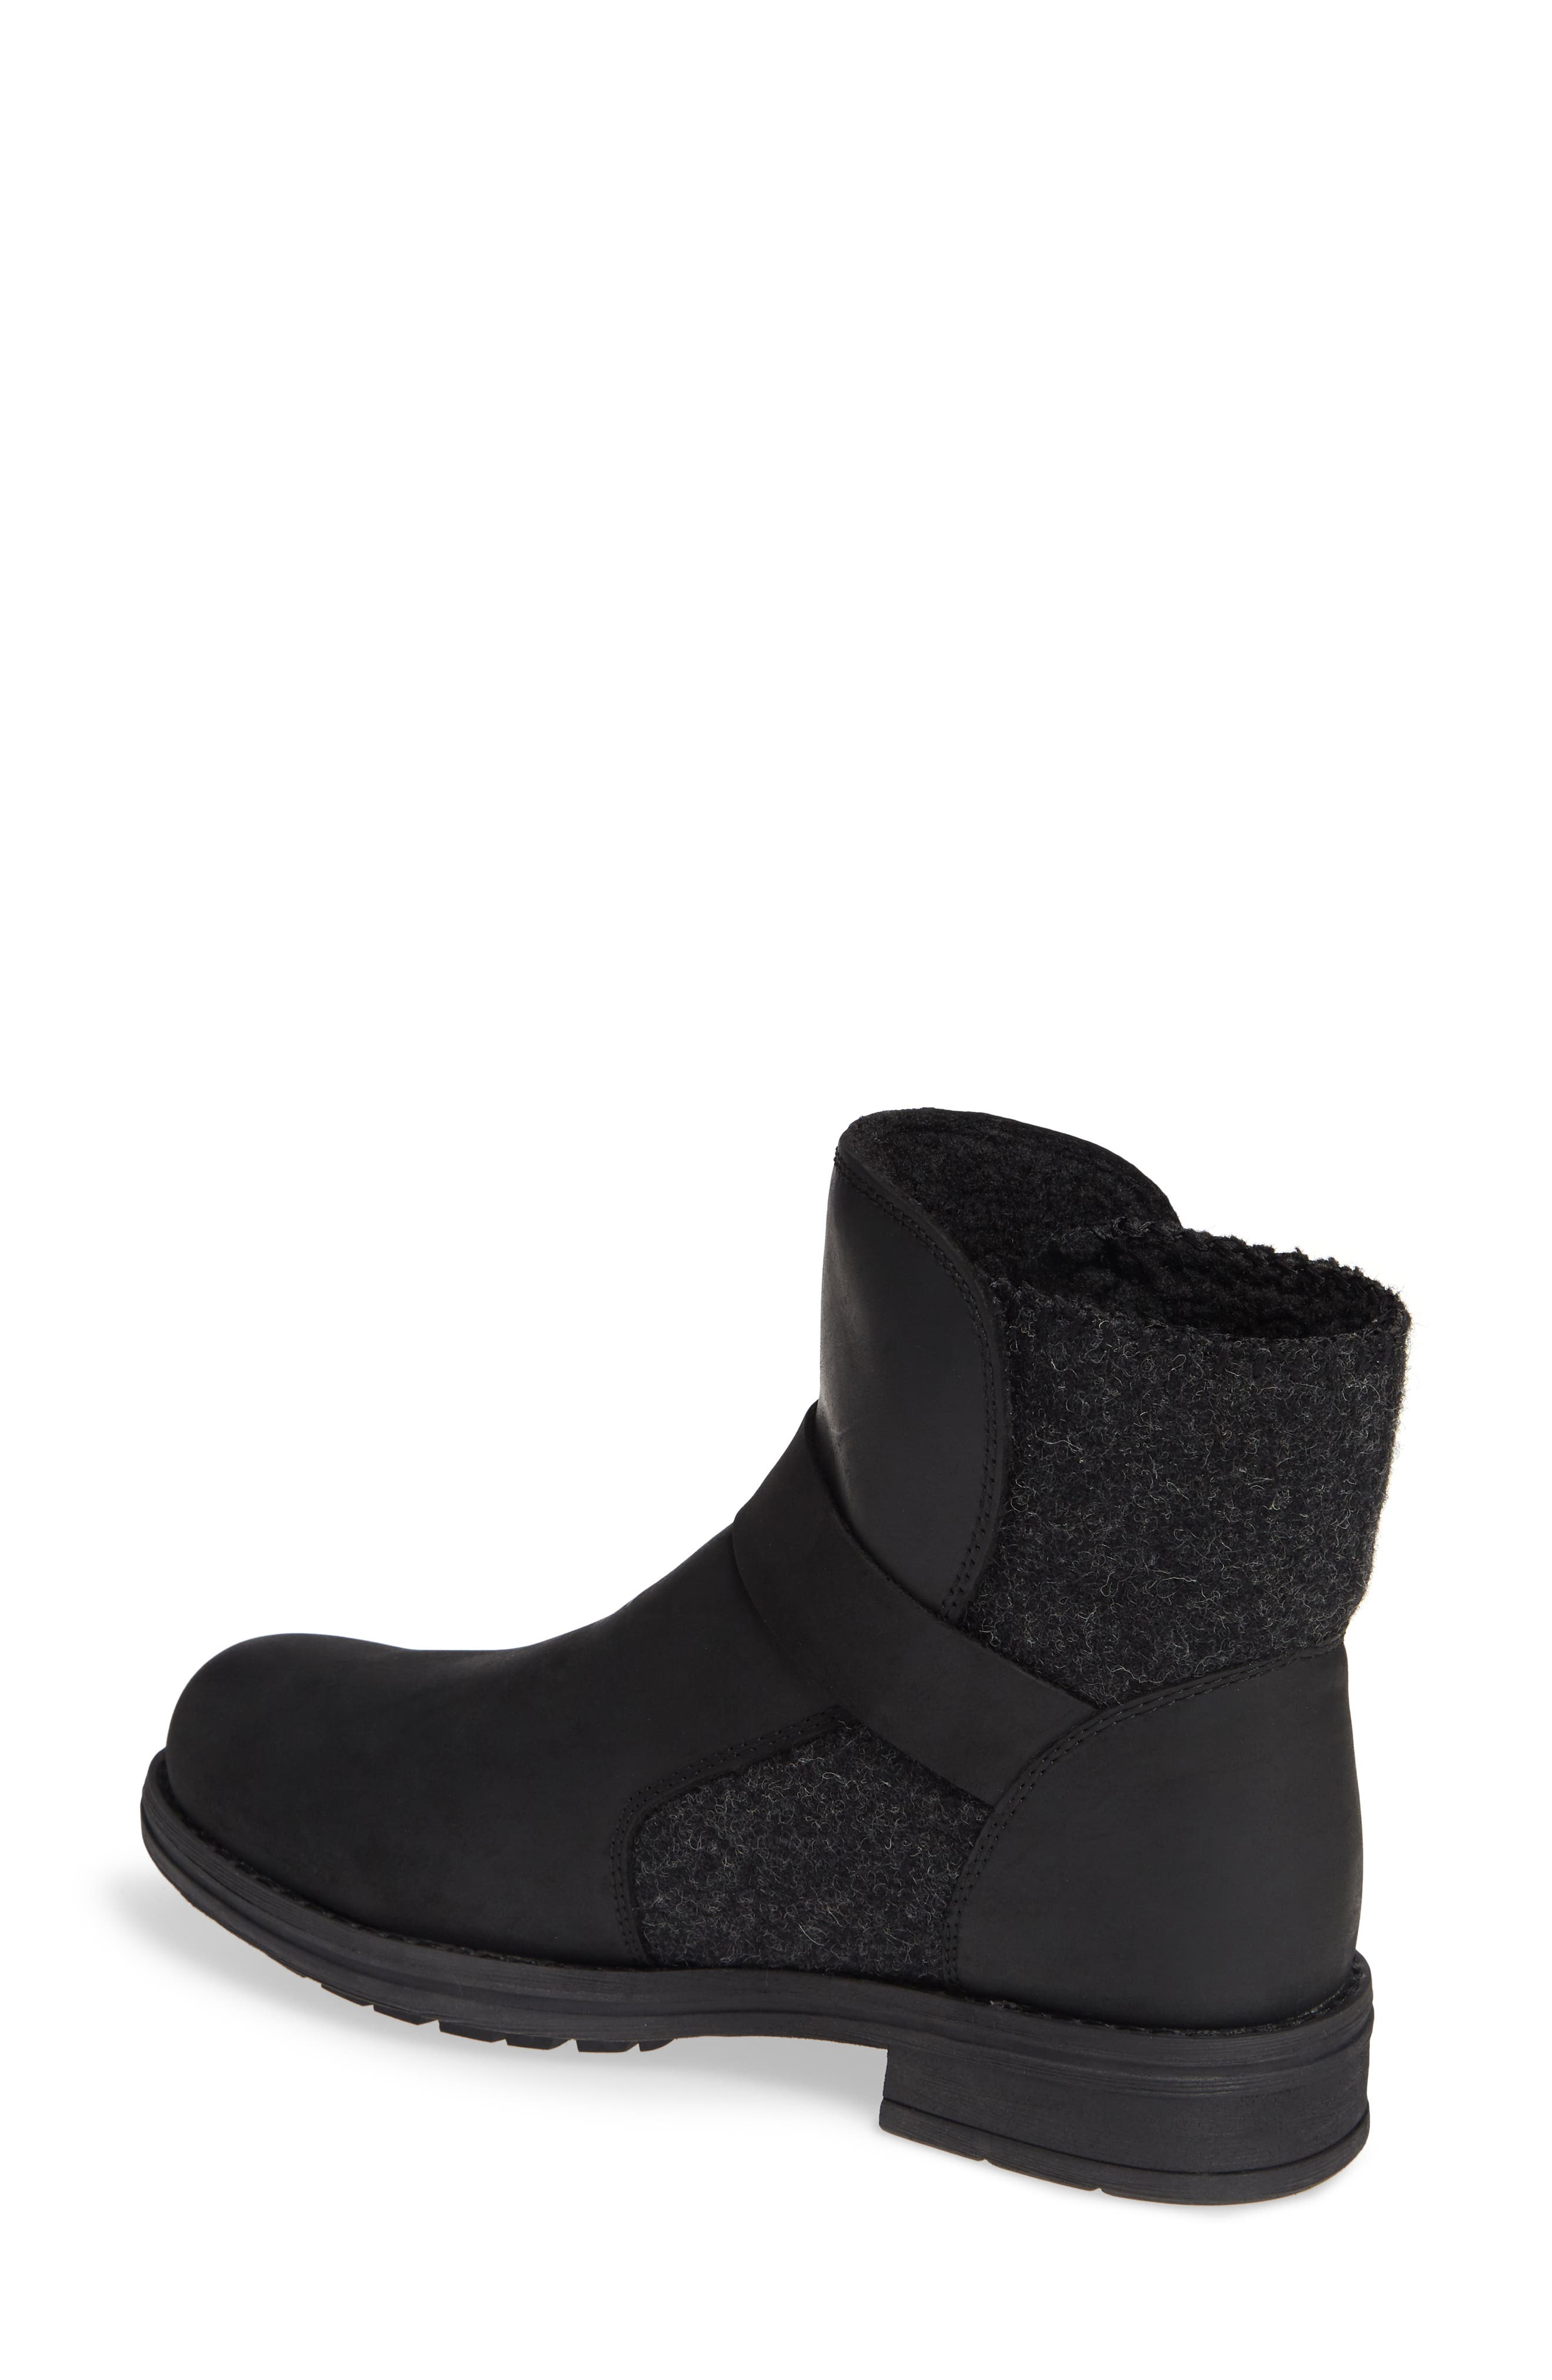 Pioneer Bootie,                             Alternate thumbnail 2, color,                             BLACK LEATHER